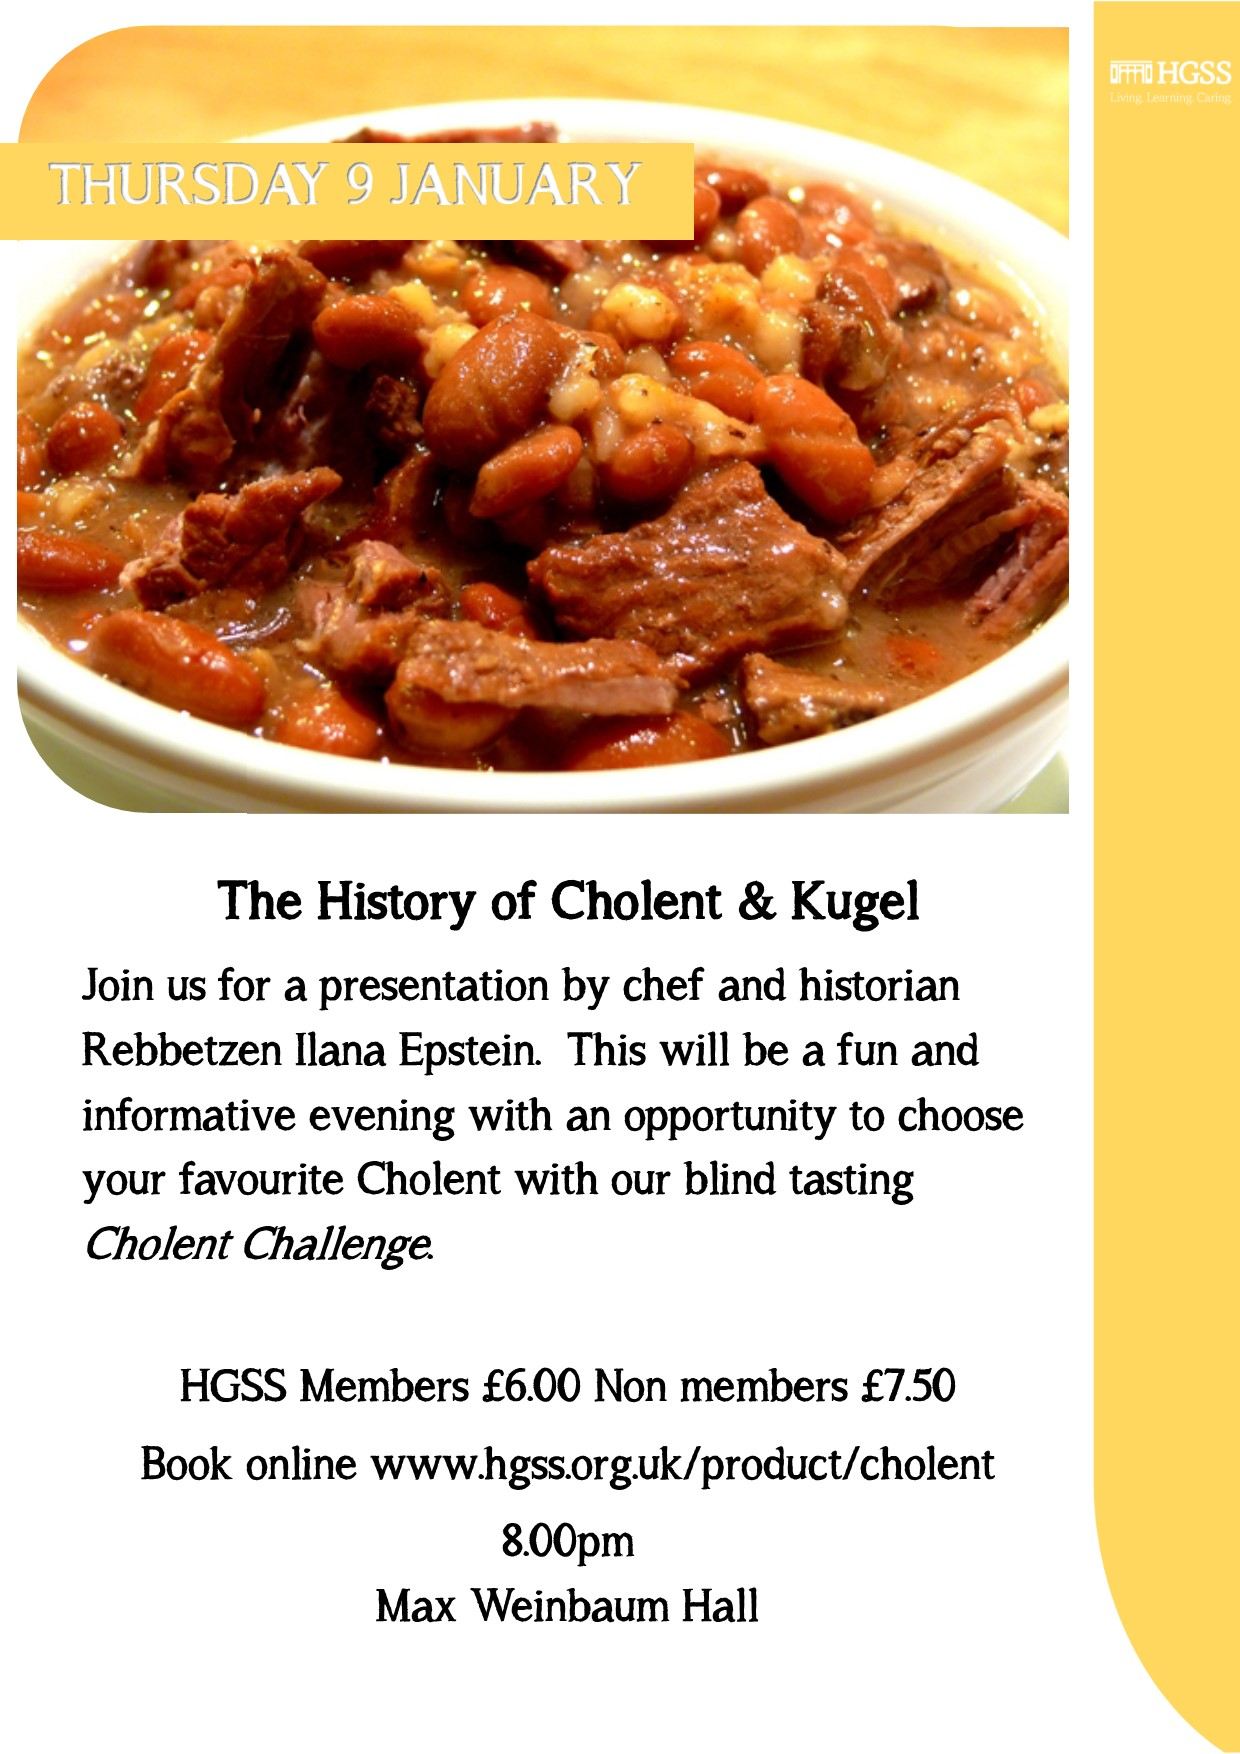 The History of Cholent & Kugel @ HGSS